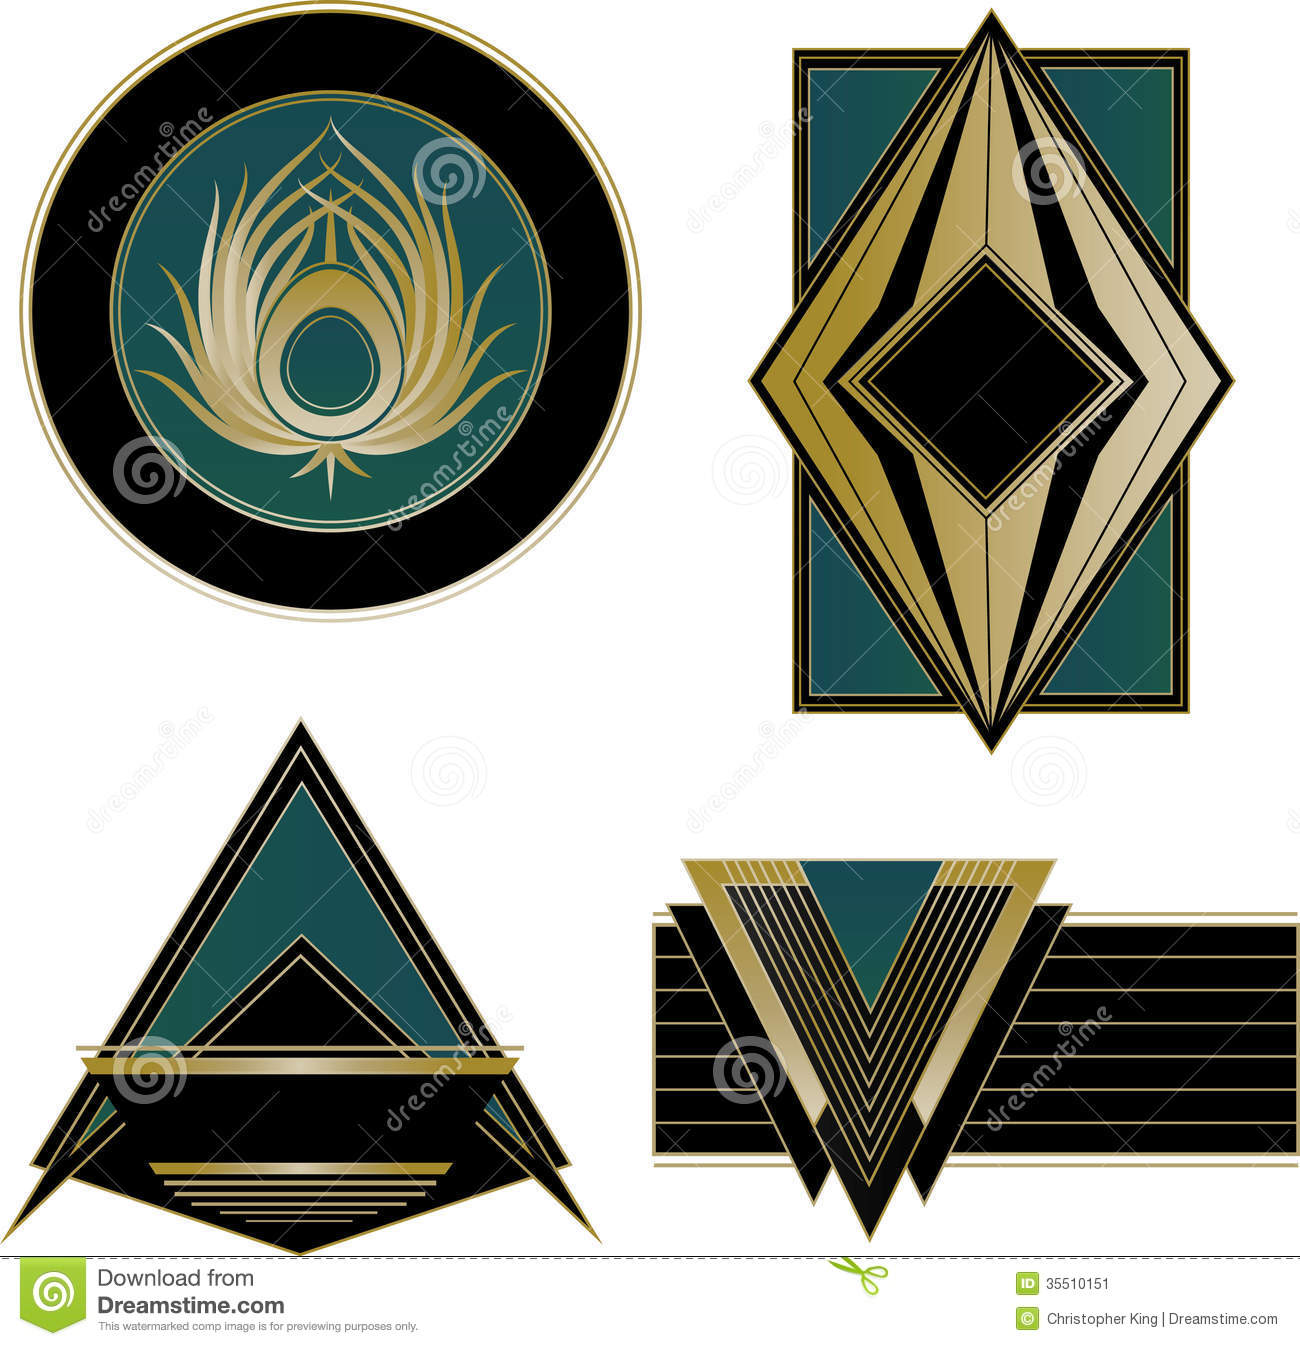 Art Deco Design art deco logos and design elements stock image - image: 35510151